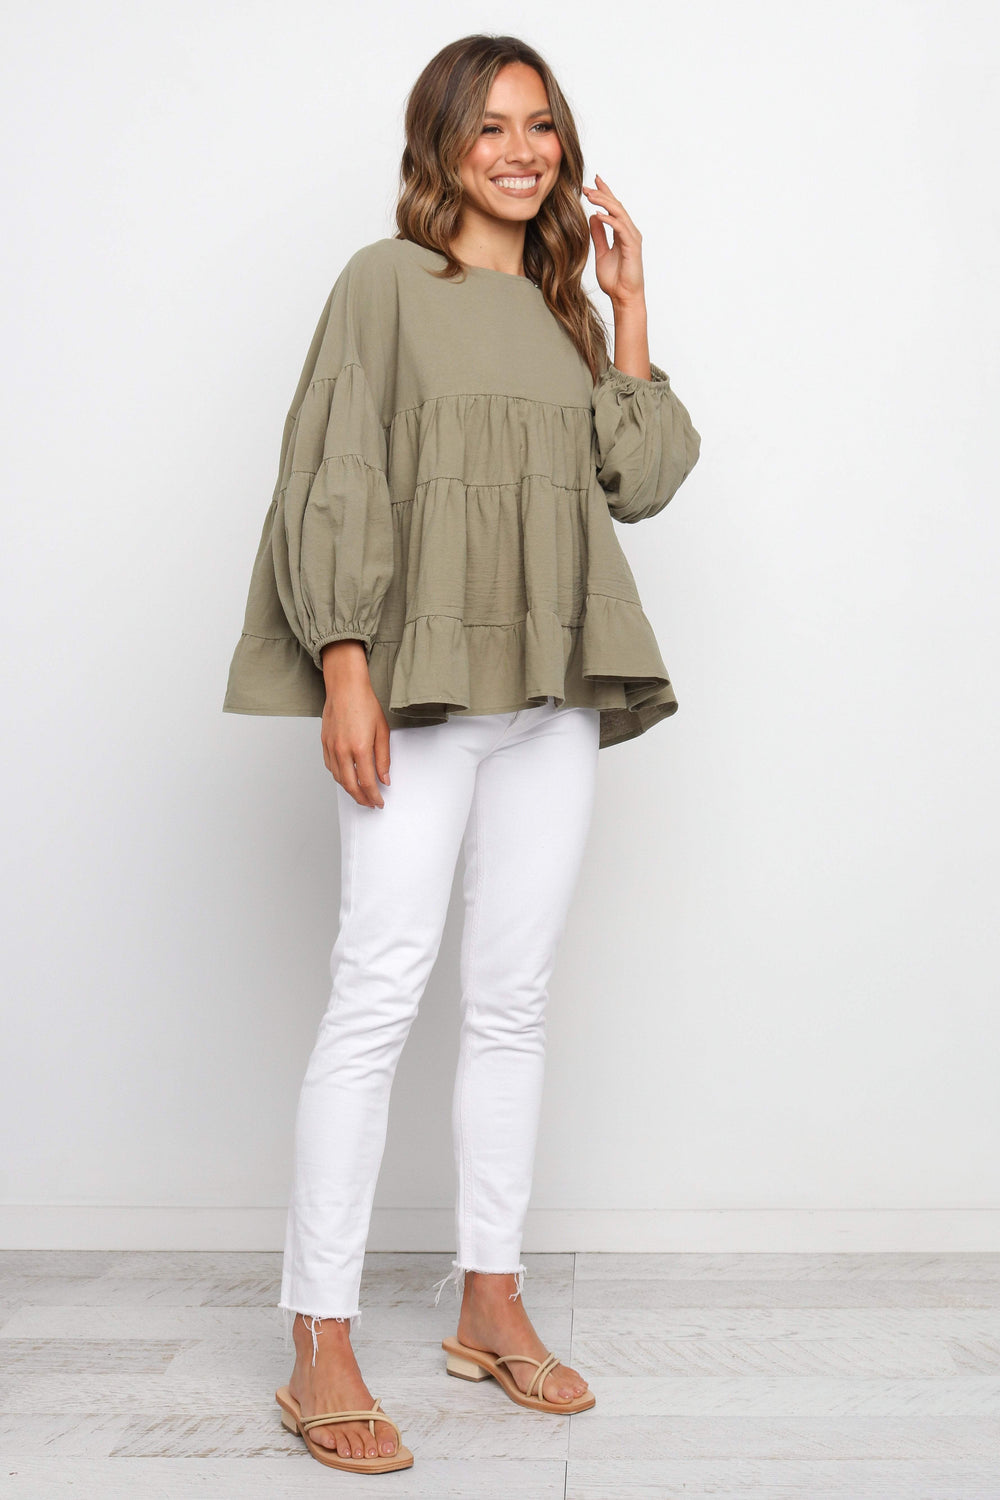 Petal and Pup USA TOPS Gaston Top - Olive